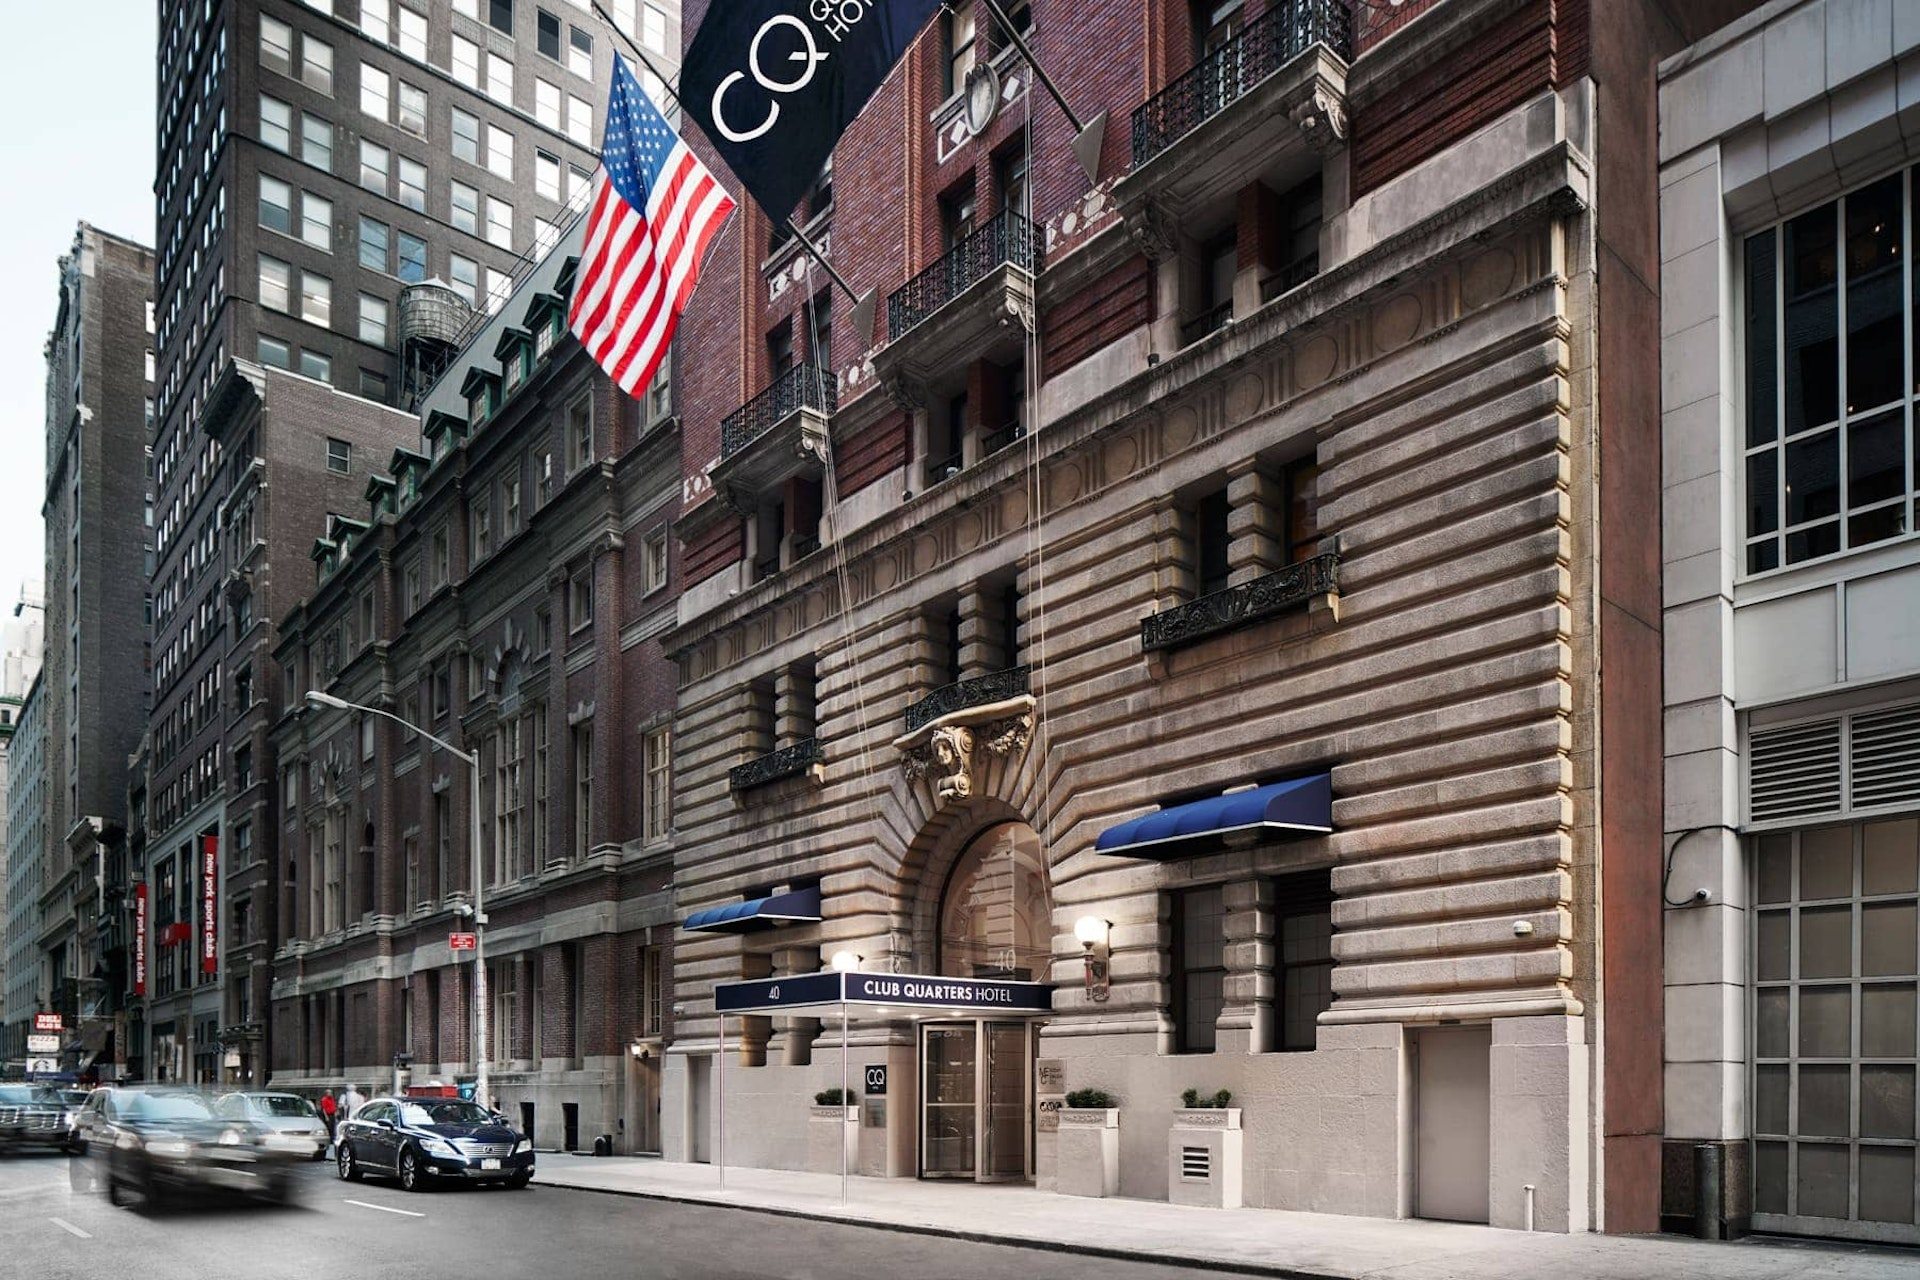 Exterior of CQ Hotel, Midtown Times Square, NYC